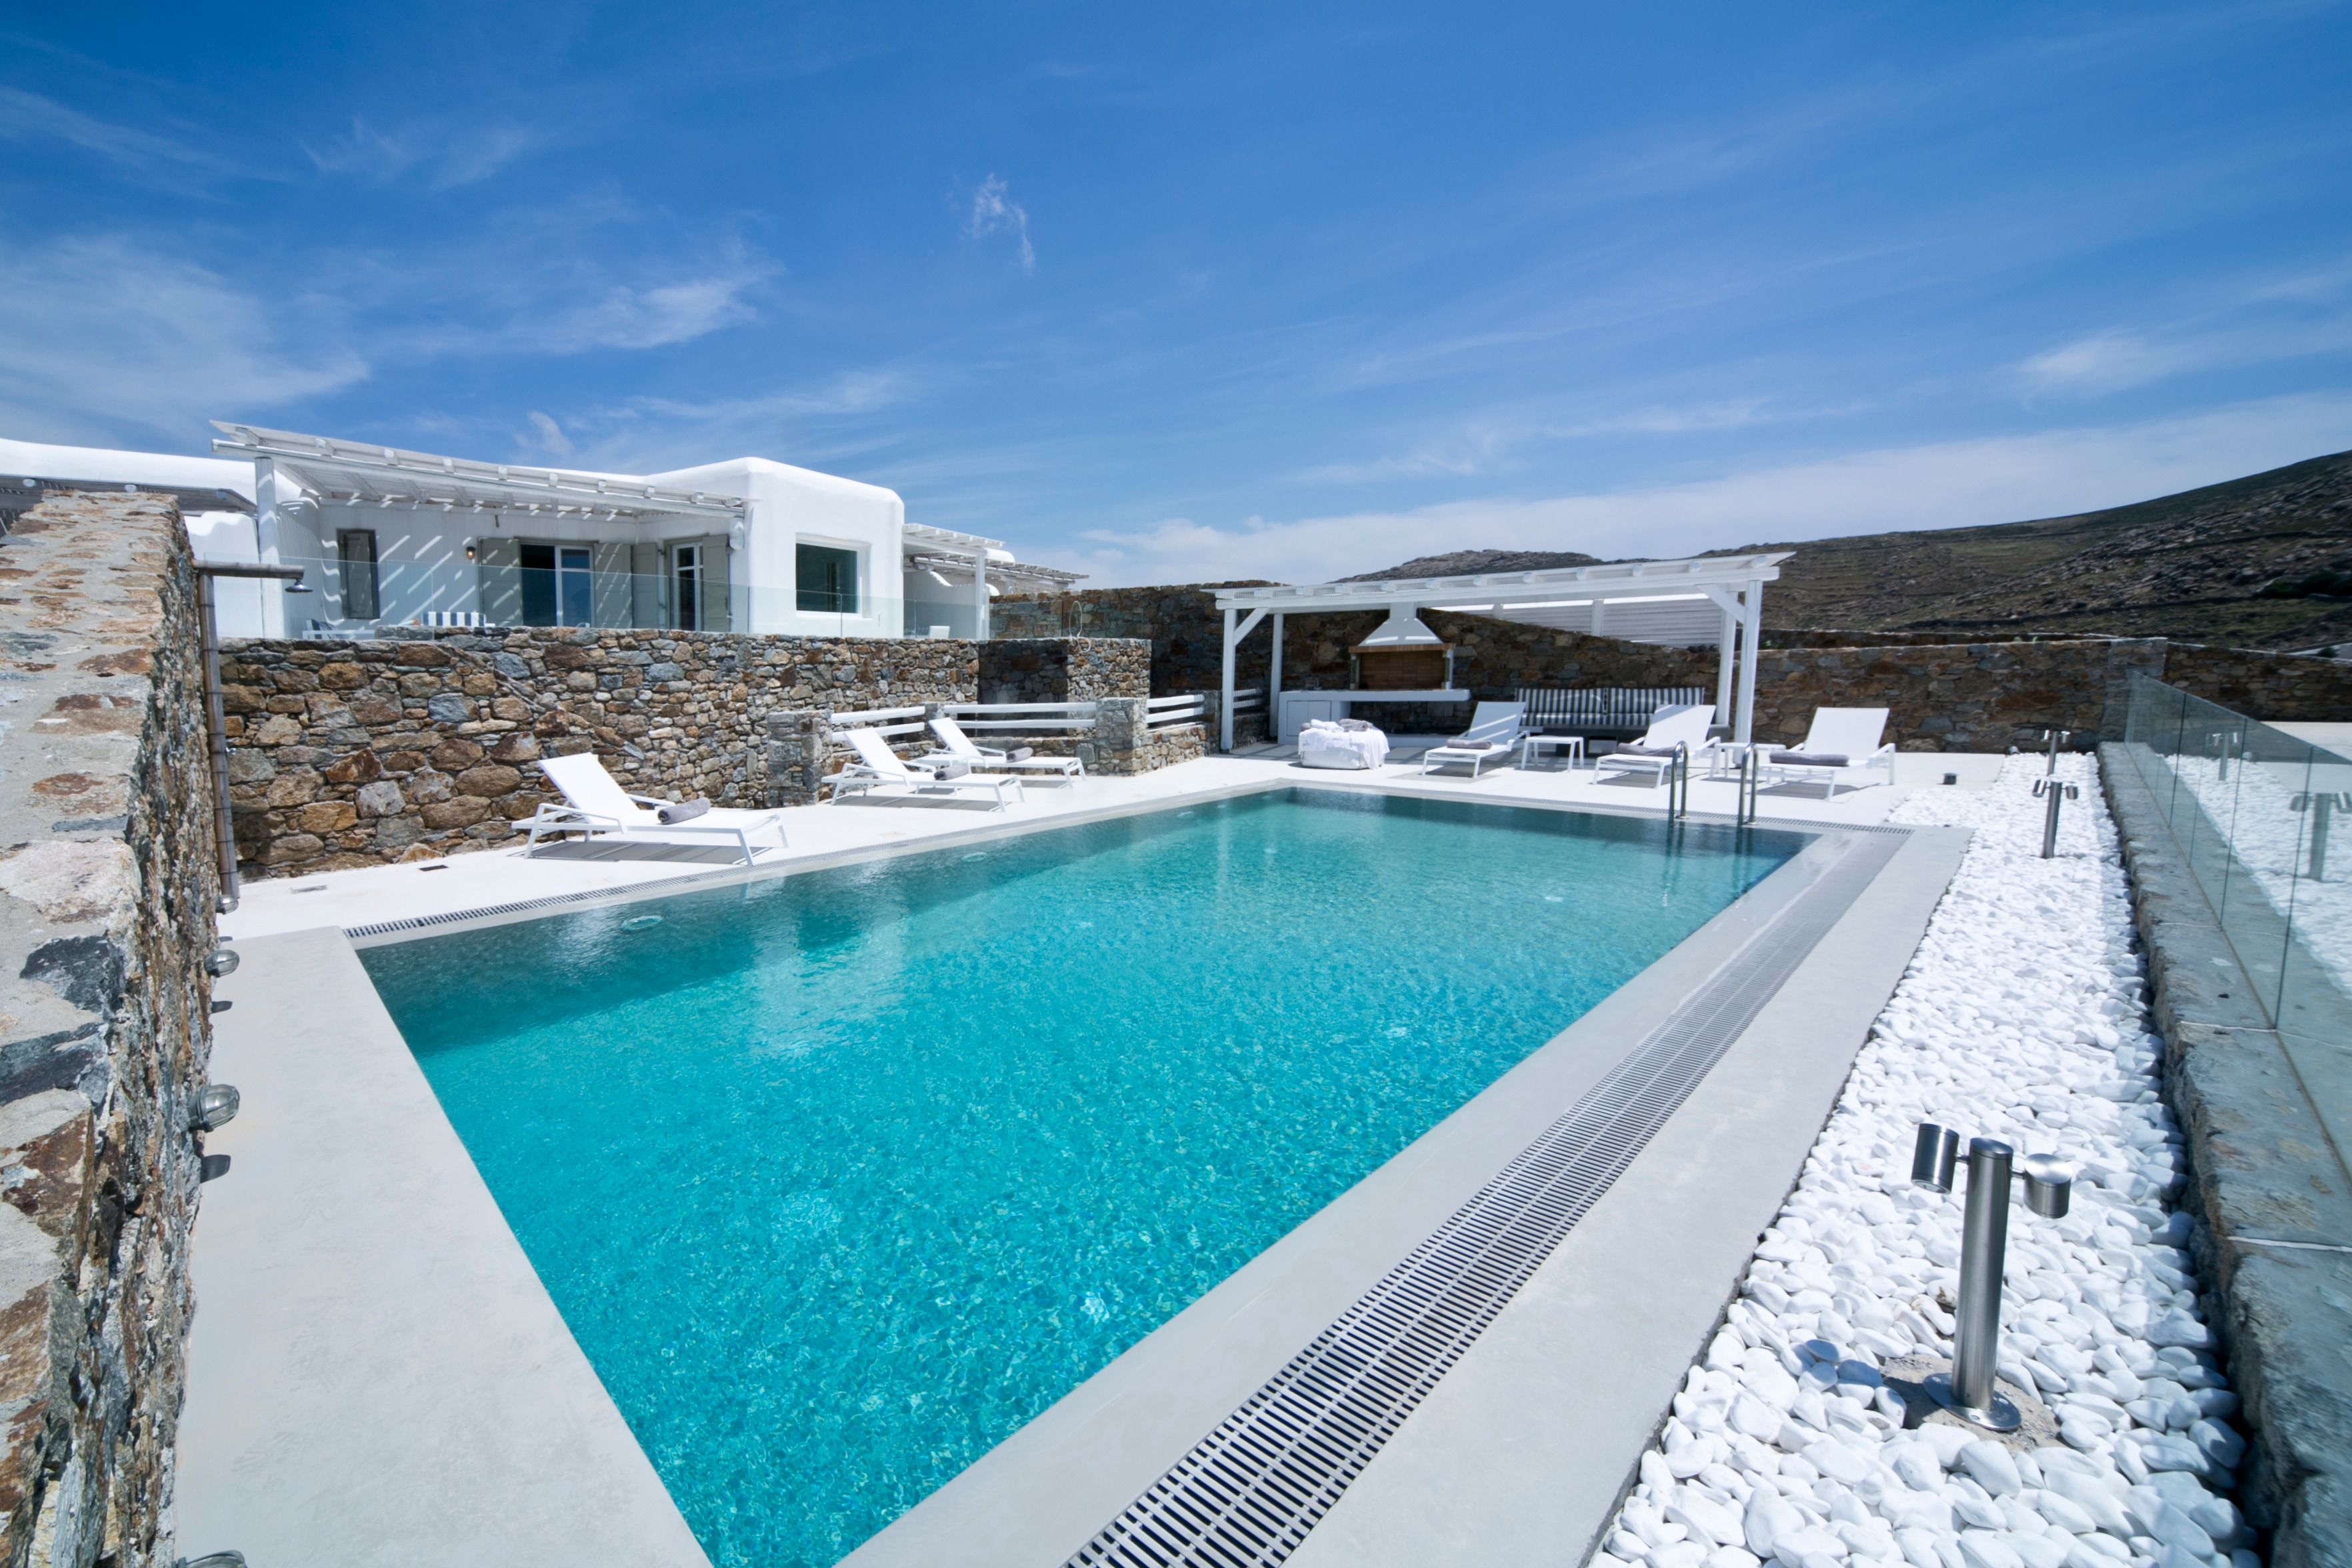 Property Image 1 - Hilltop luxury villa with private pool